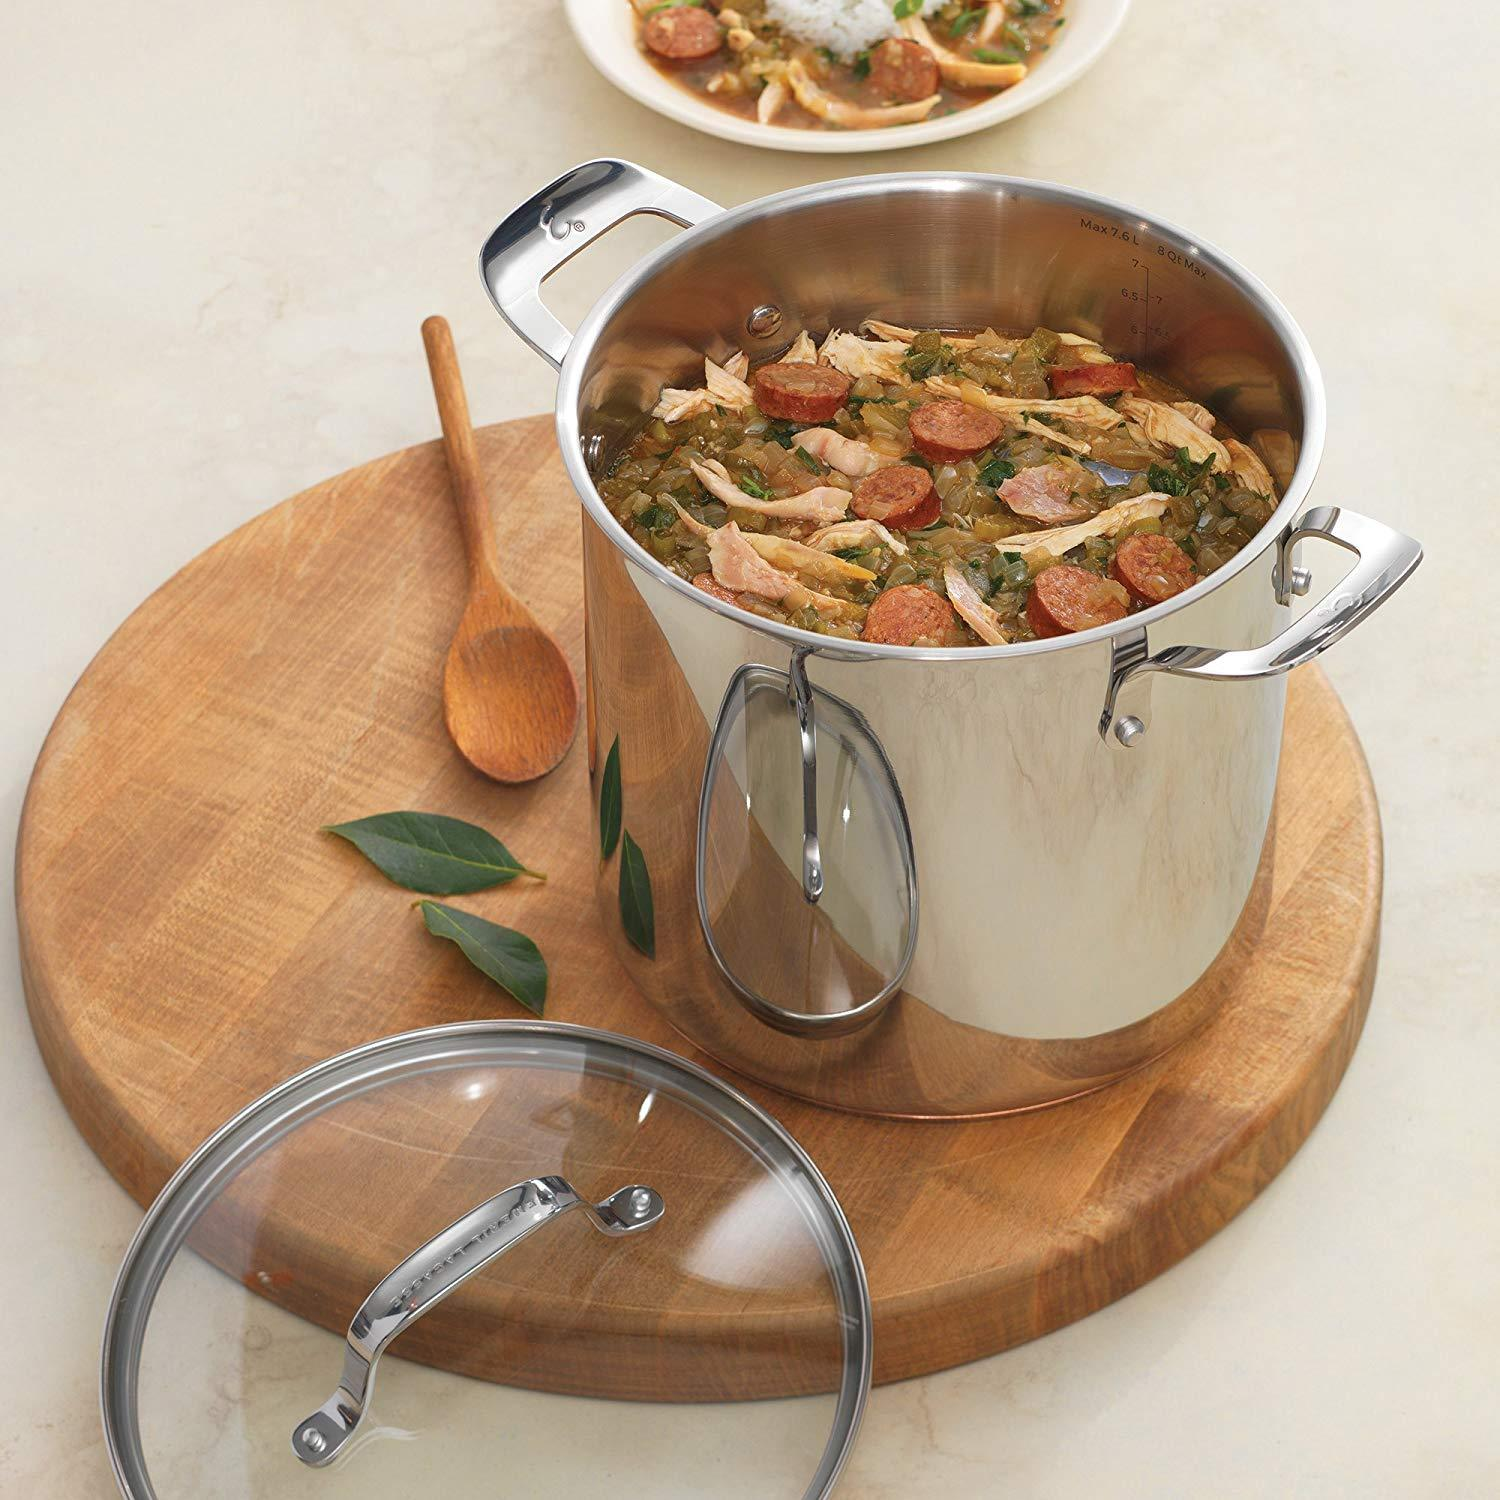 Emeril Lagasse Stainless Steel Copper Core Stock Pot, 8 quart, Silver SOLID NEW. - $349.70